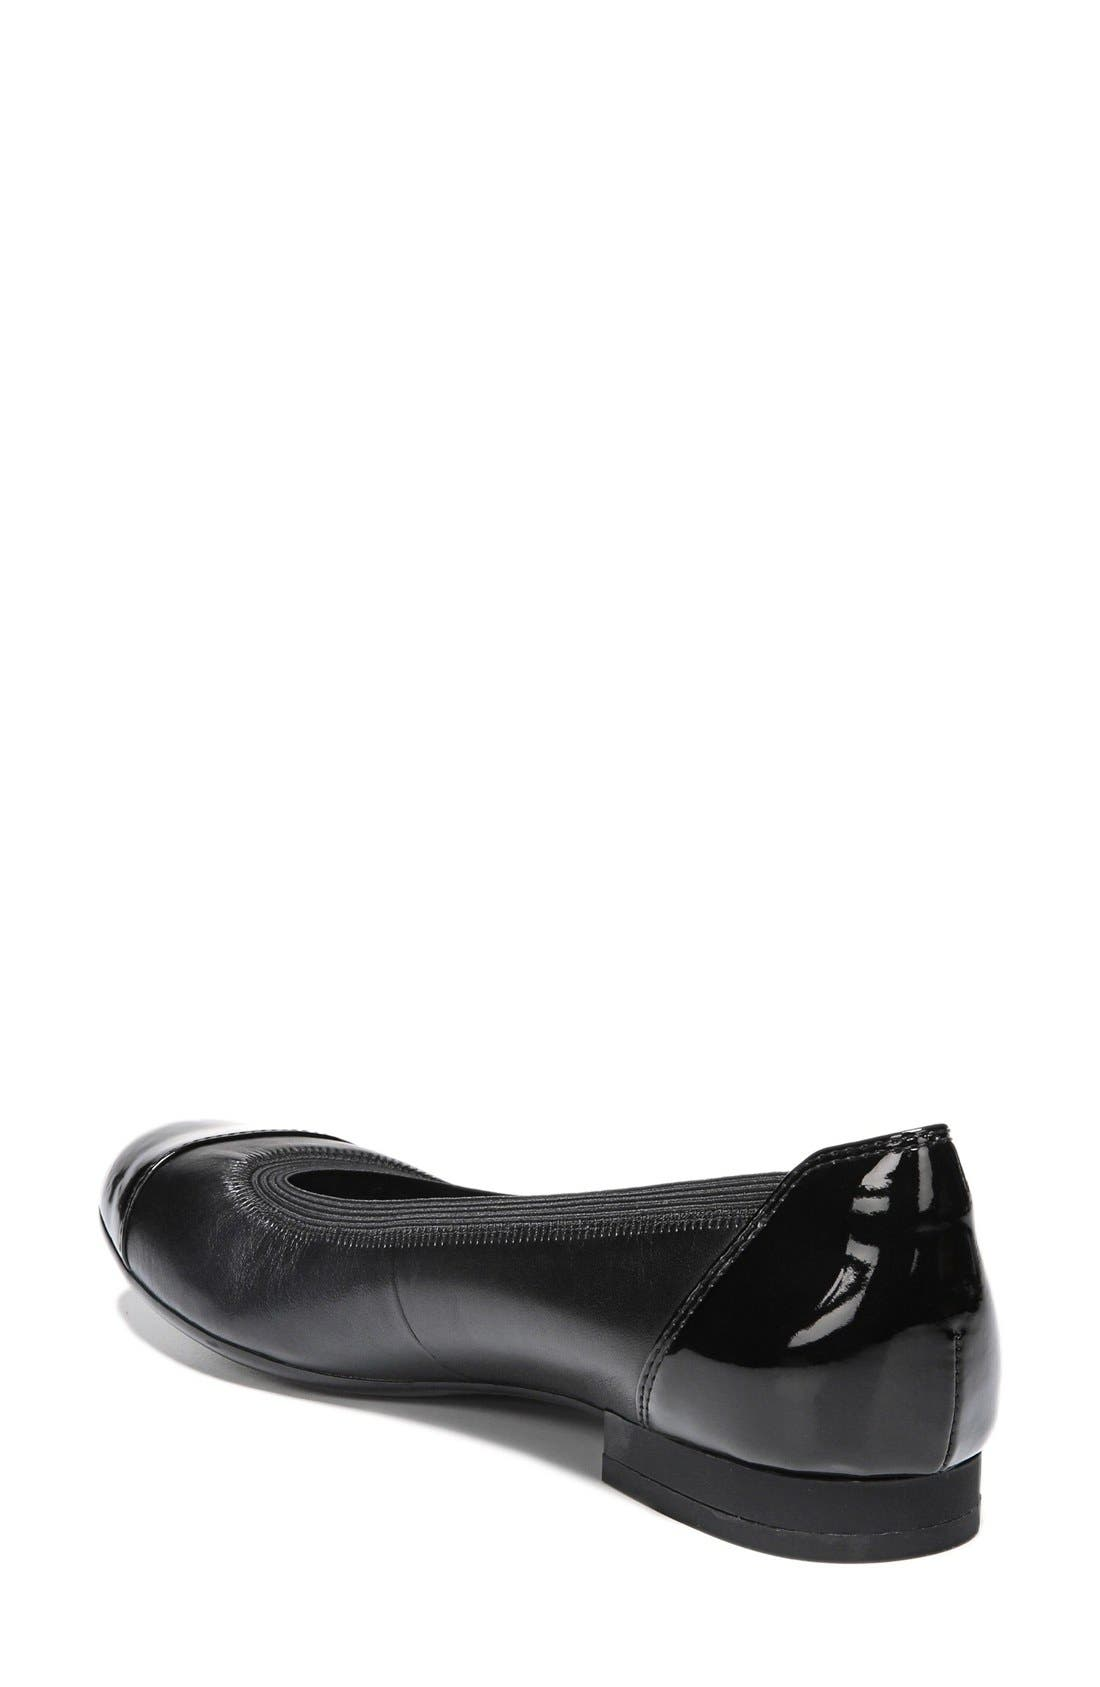 'Therese' Cap Toe Flat,                             Alternate thumbnail 3, color,                             001